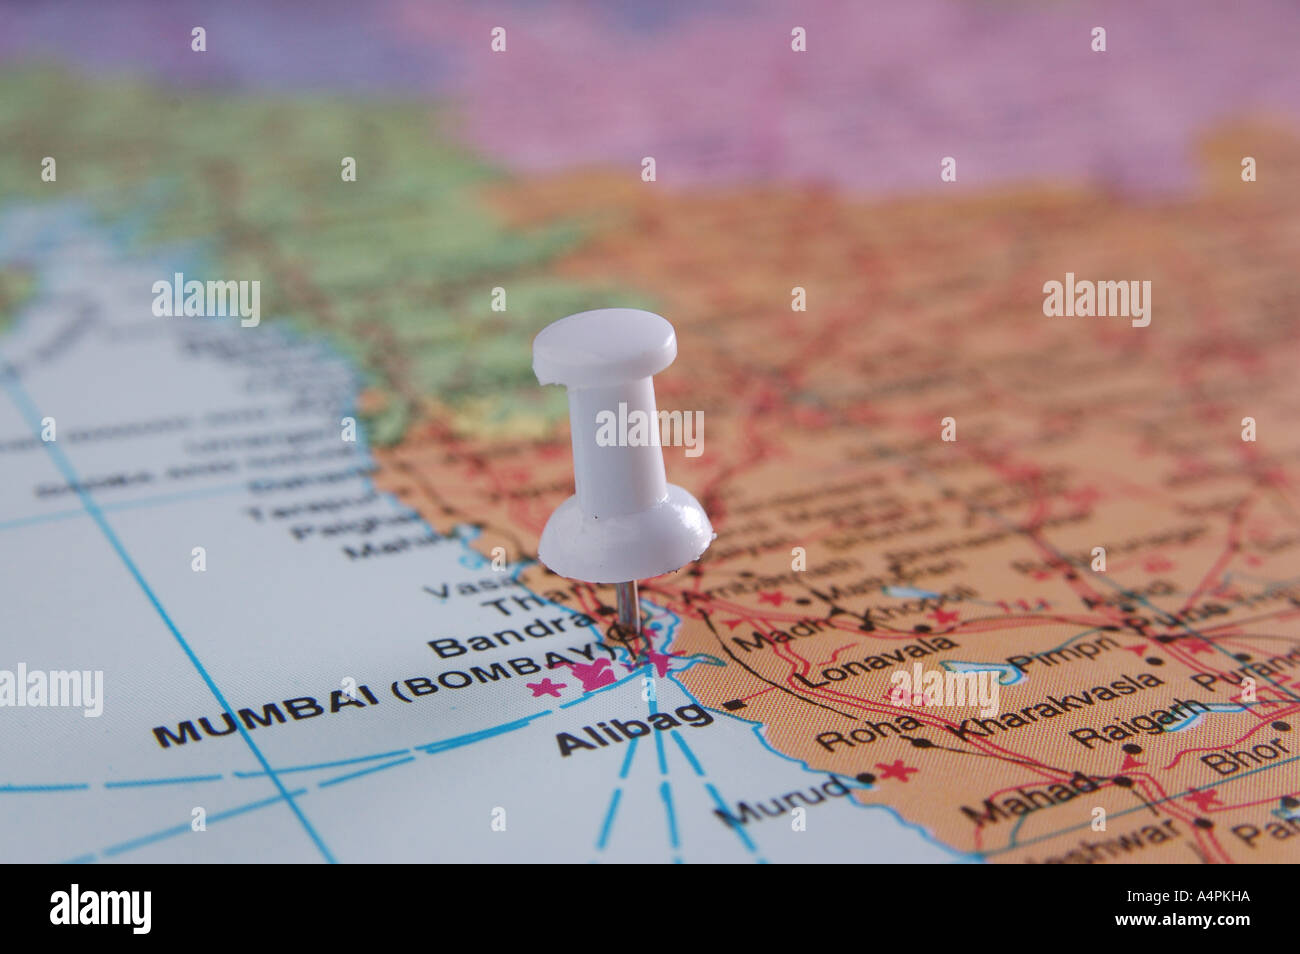 Bombay Map Stock Photos & Bombay Map Stock Images - Page 3 - Alamy